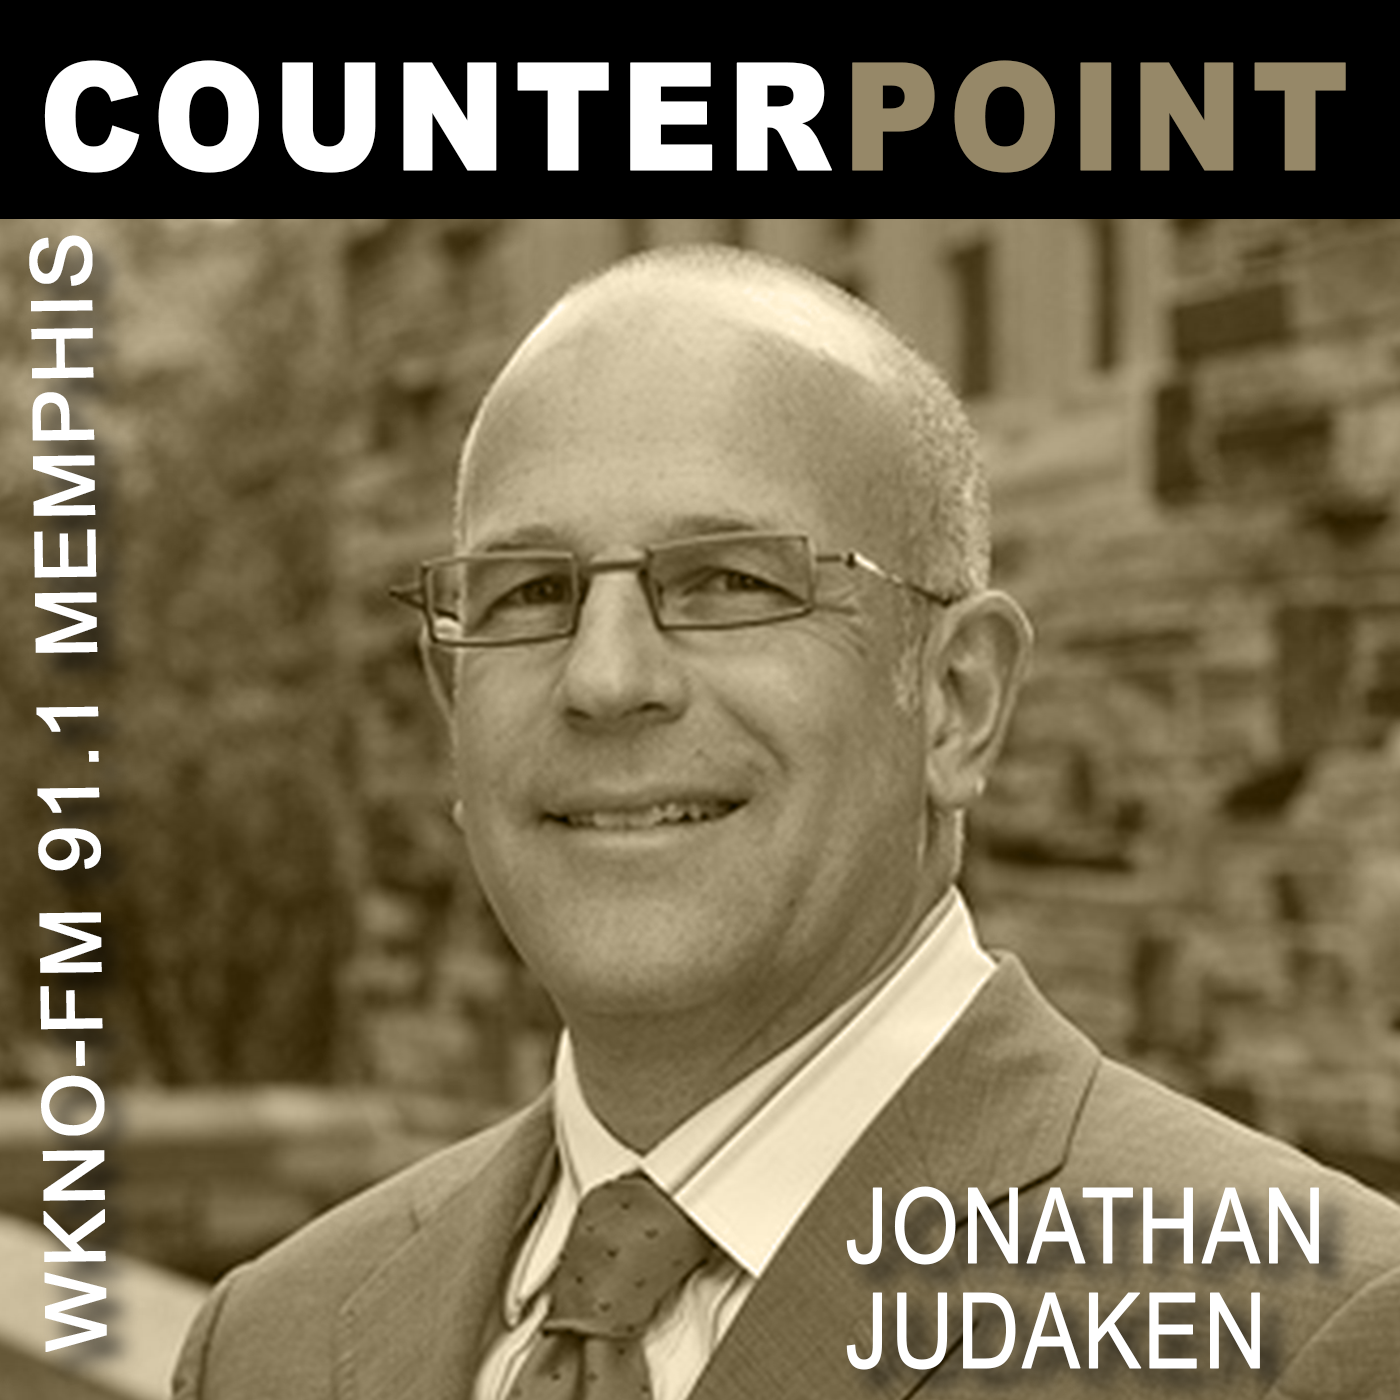 Counterpoint with Jonathan Judaken